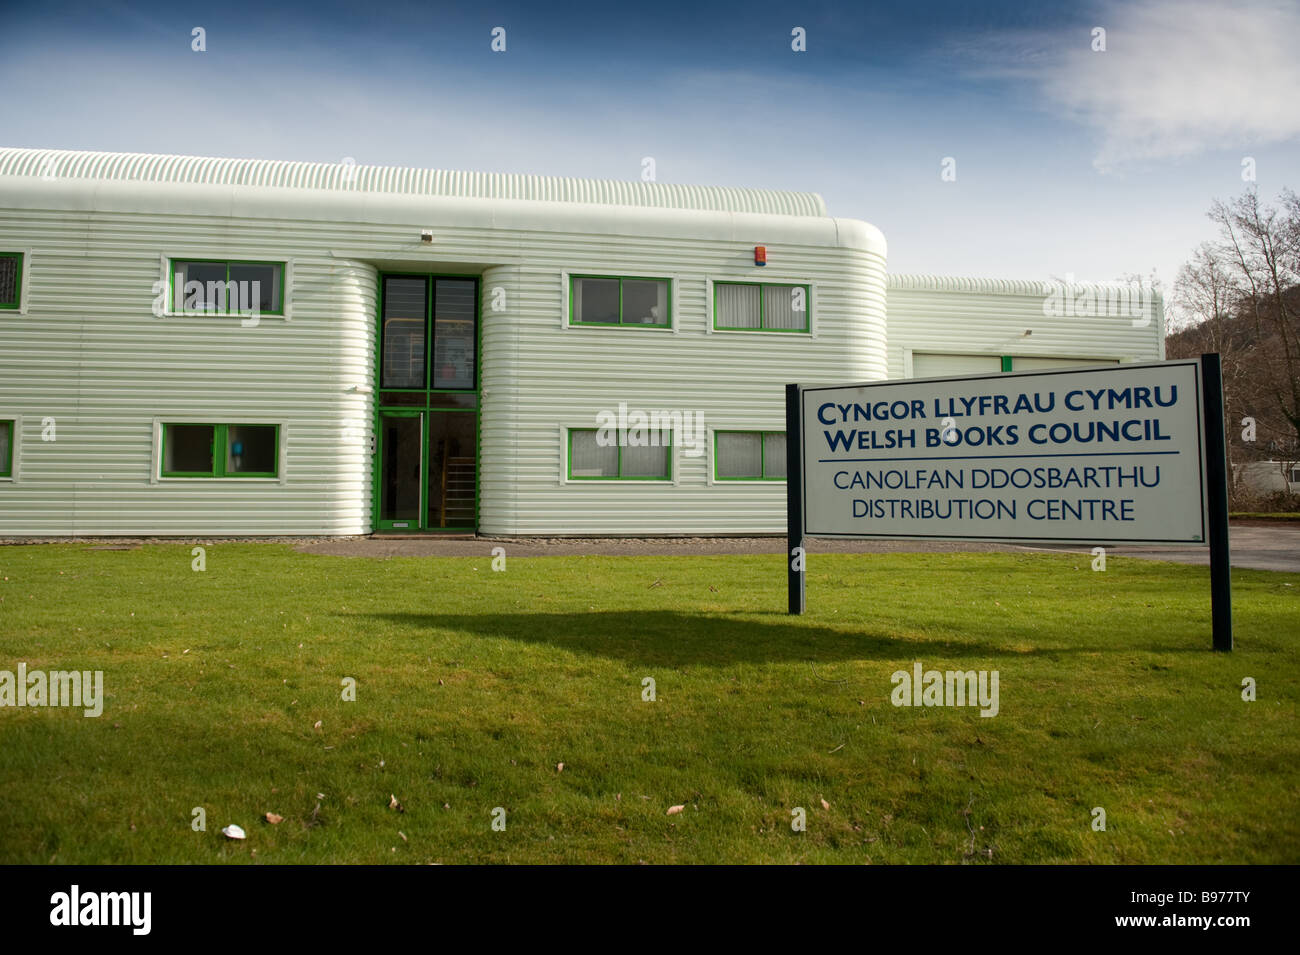 The Wales Book Council warehouse and distribution centre Aberystwyth Wales UK - Stock Image